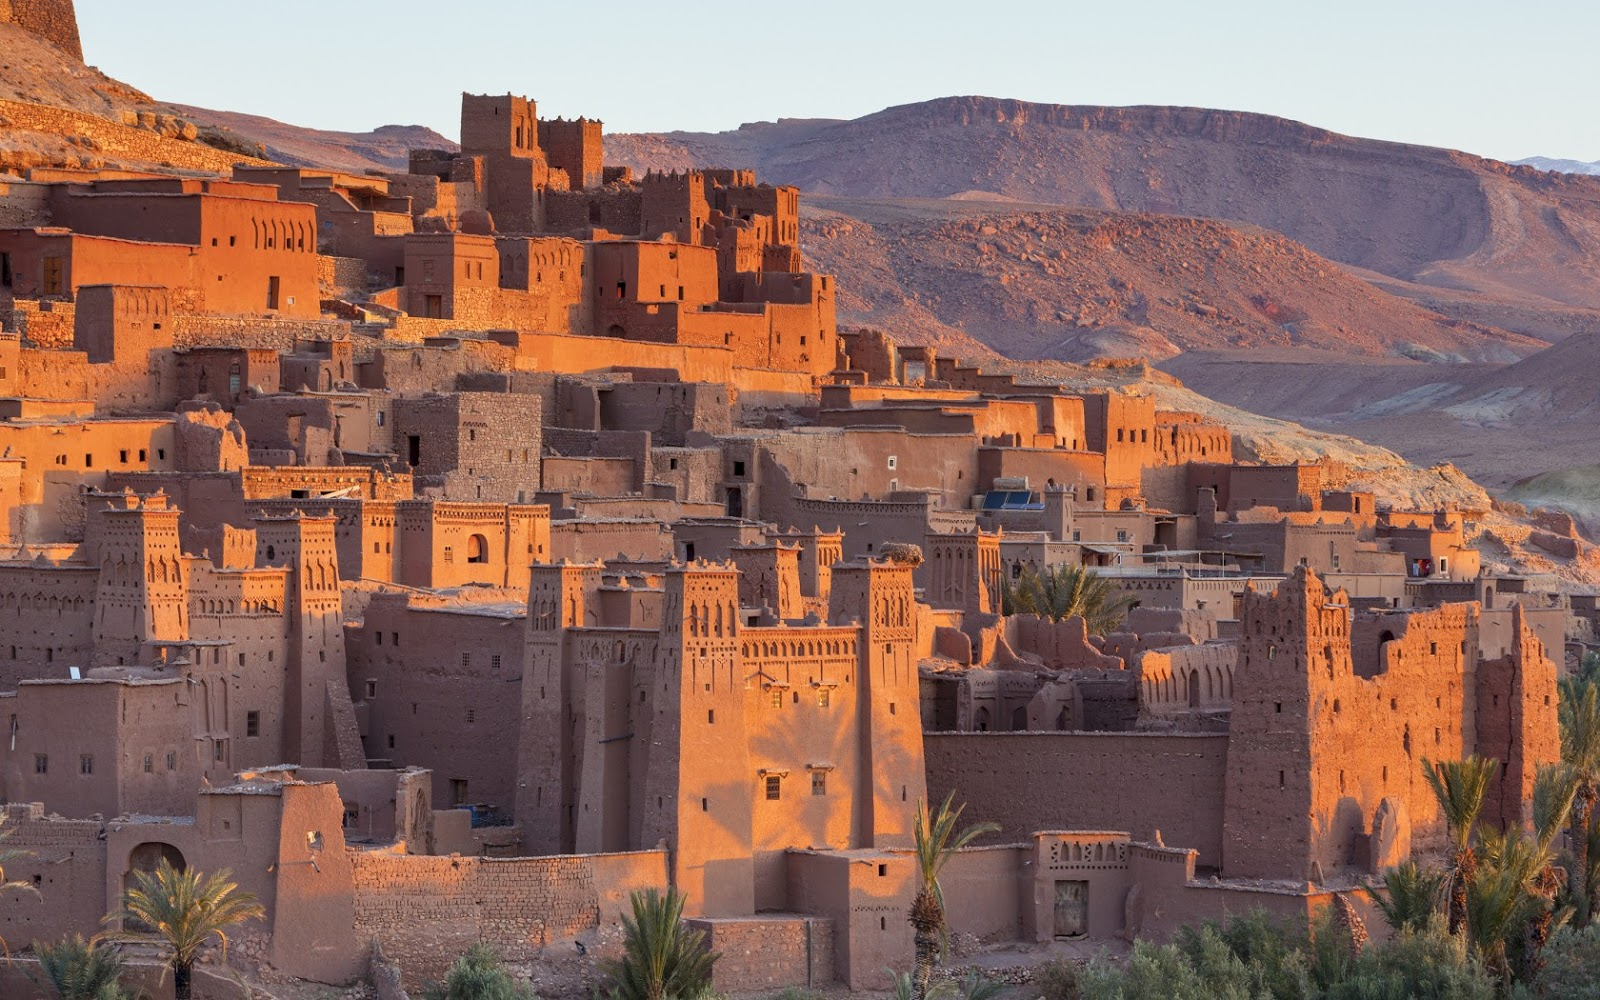 game of thrones detailed map with The Ksar Of Ait Ben Haddou on New Official Westeros Map 344418133 further Game Of Thrones Westeros Map Coffee Table besides Everything westeros and essos map game of thrones in addition Key Arena Tickets also Kings landing from the game of thrones series.